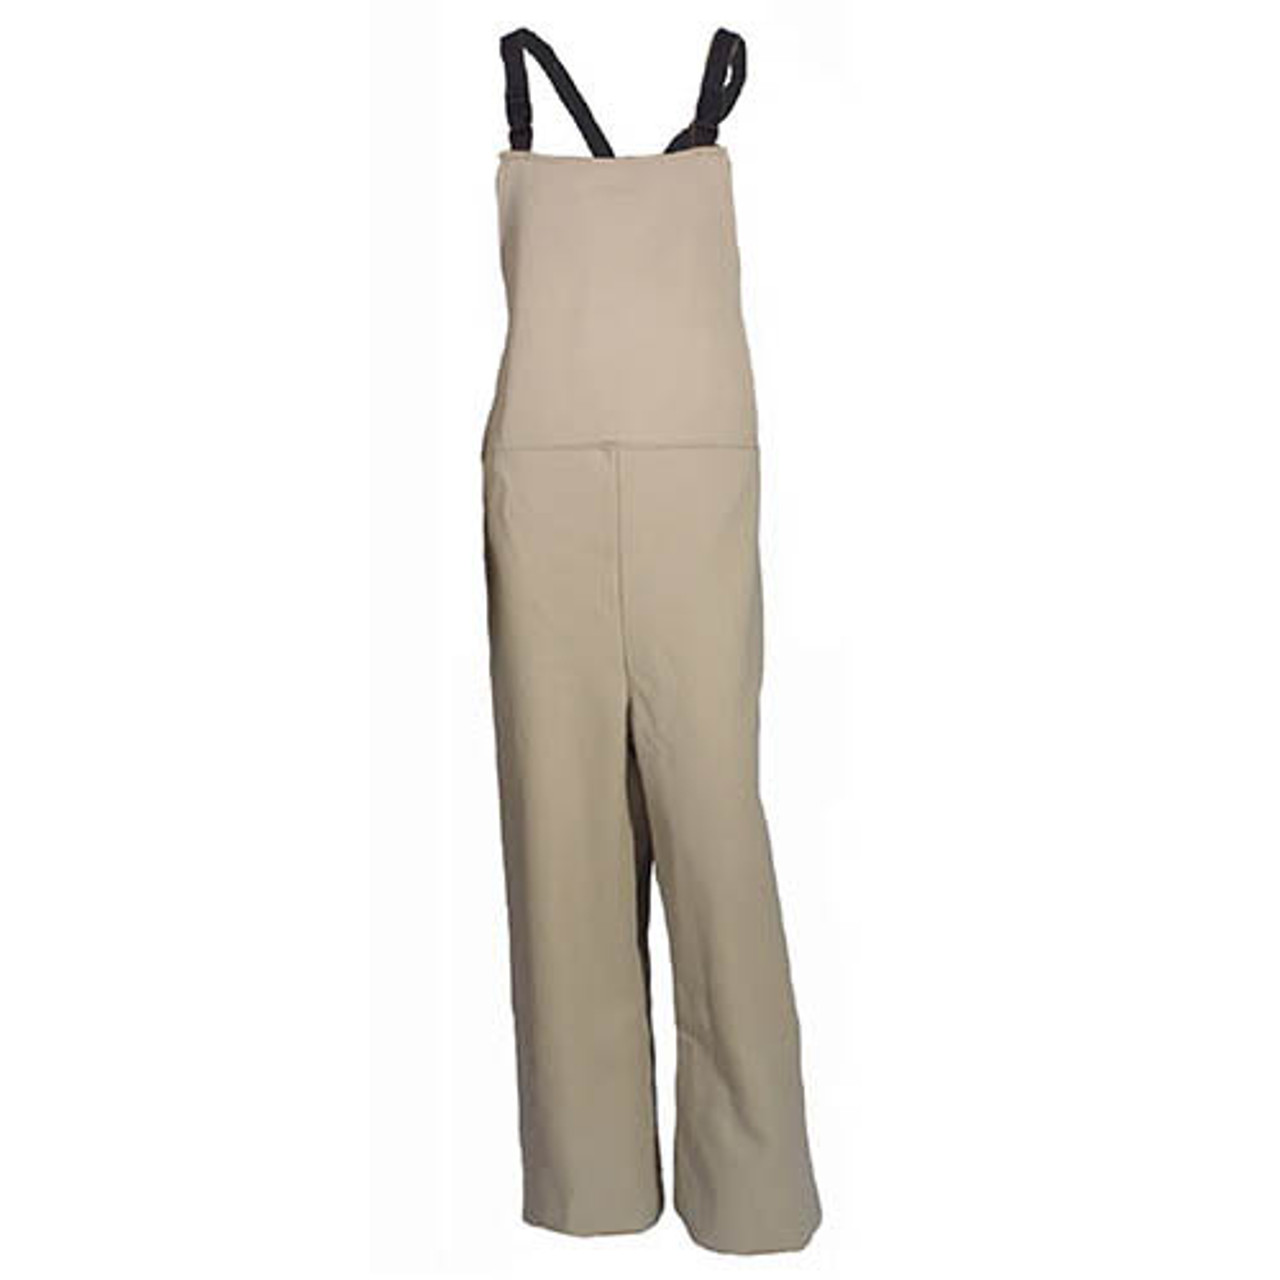 Cementex HRC4-OA-M Arc Flash Rated Task Wear FR Treated Cotton Overalls, Rating: 40 Calories, Color: Khaki, Size: Medium